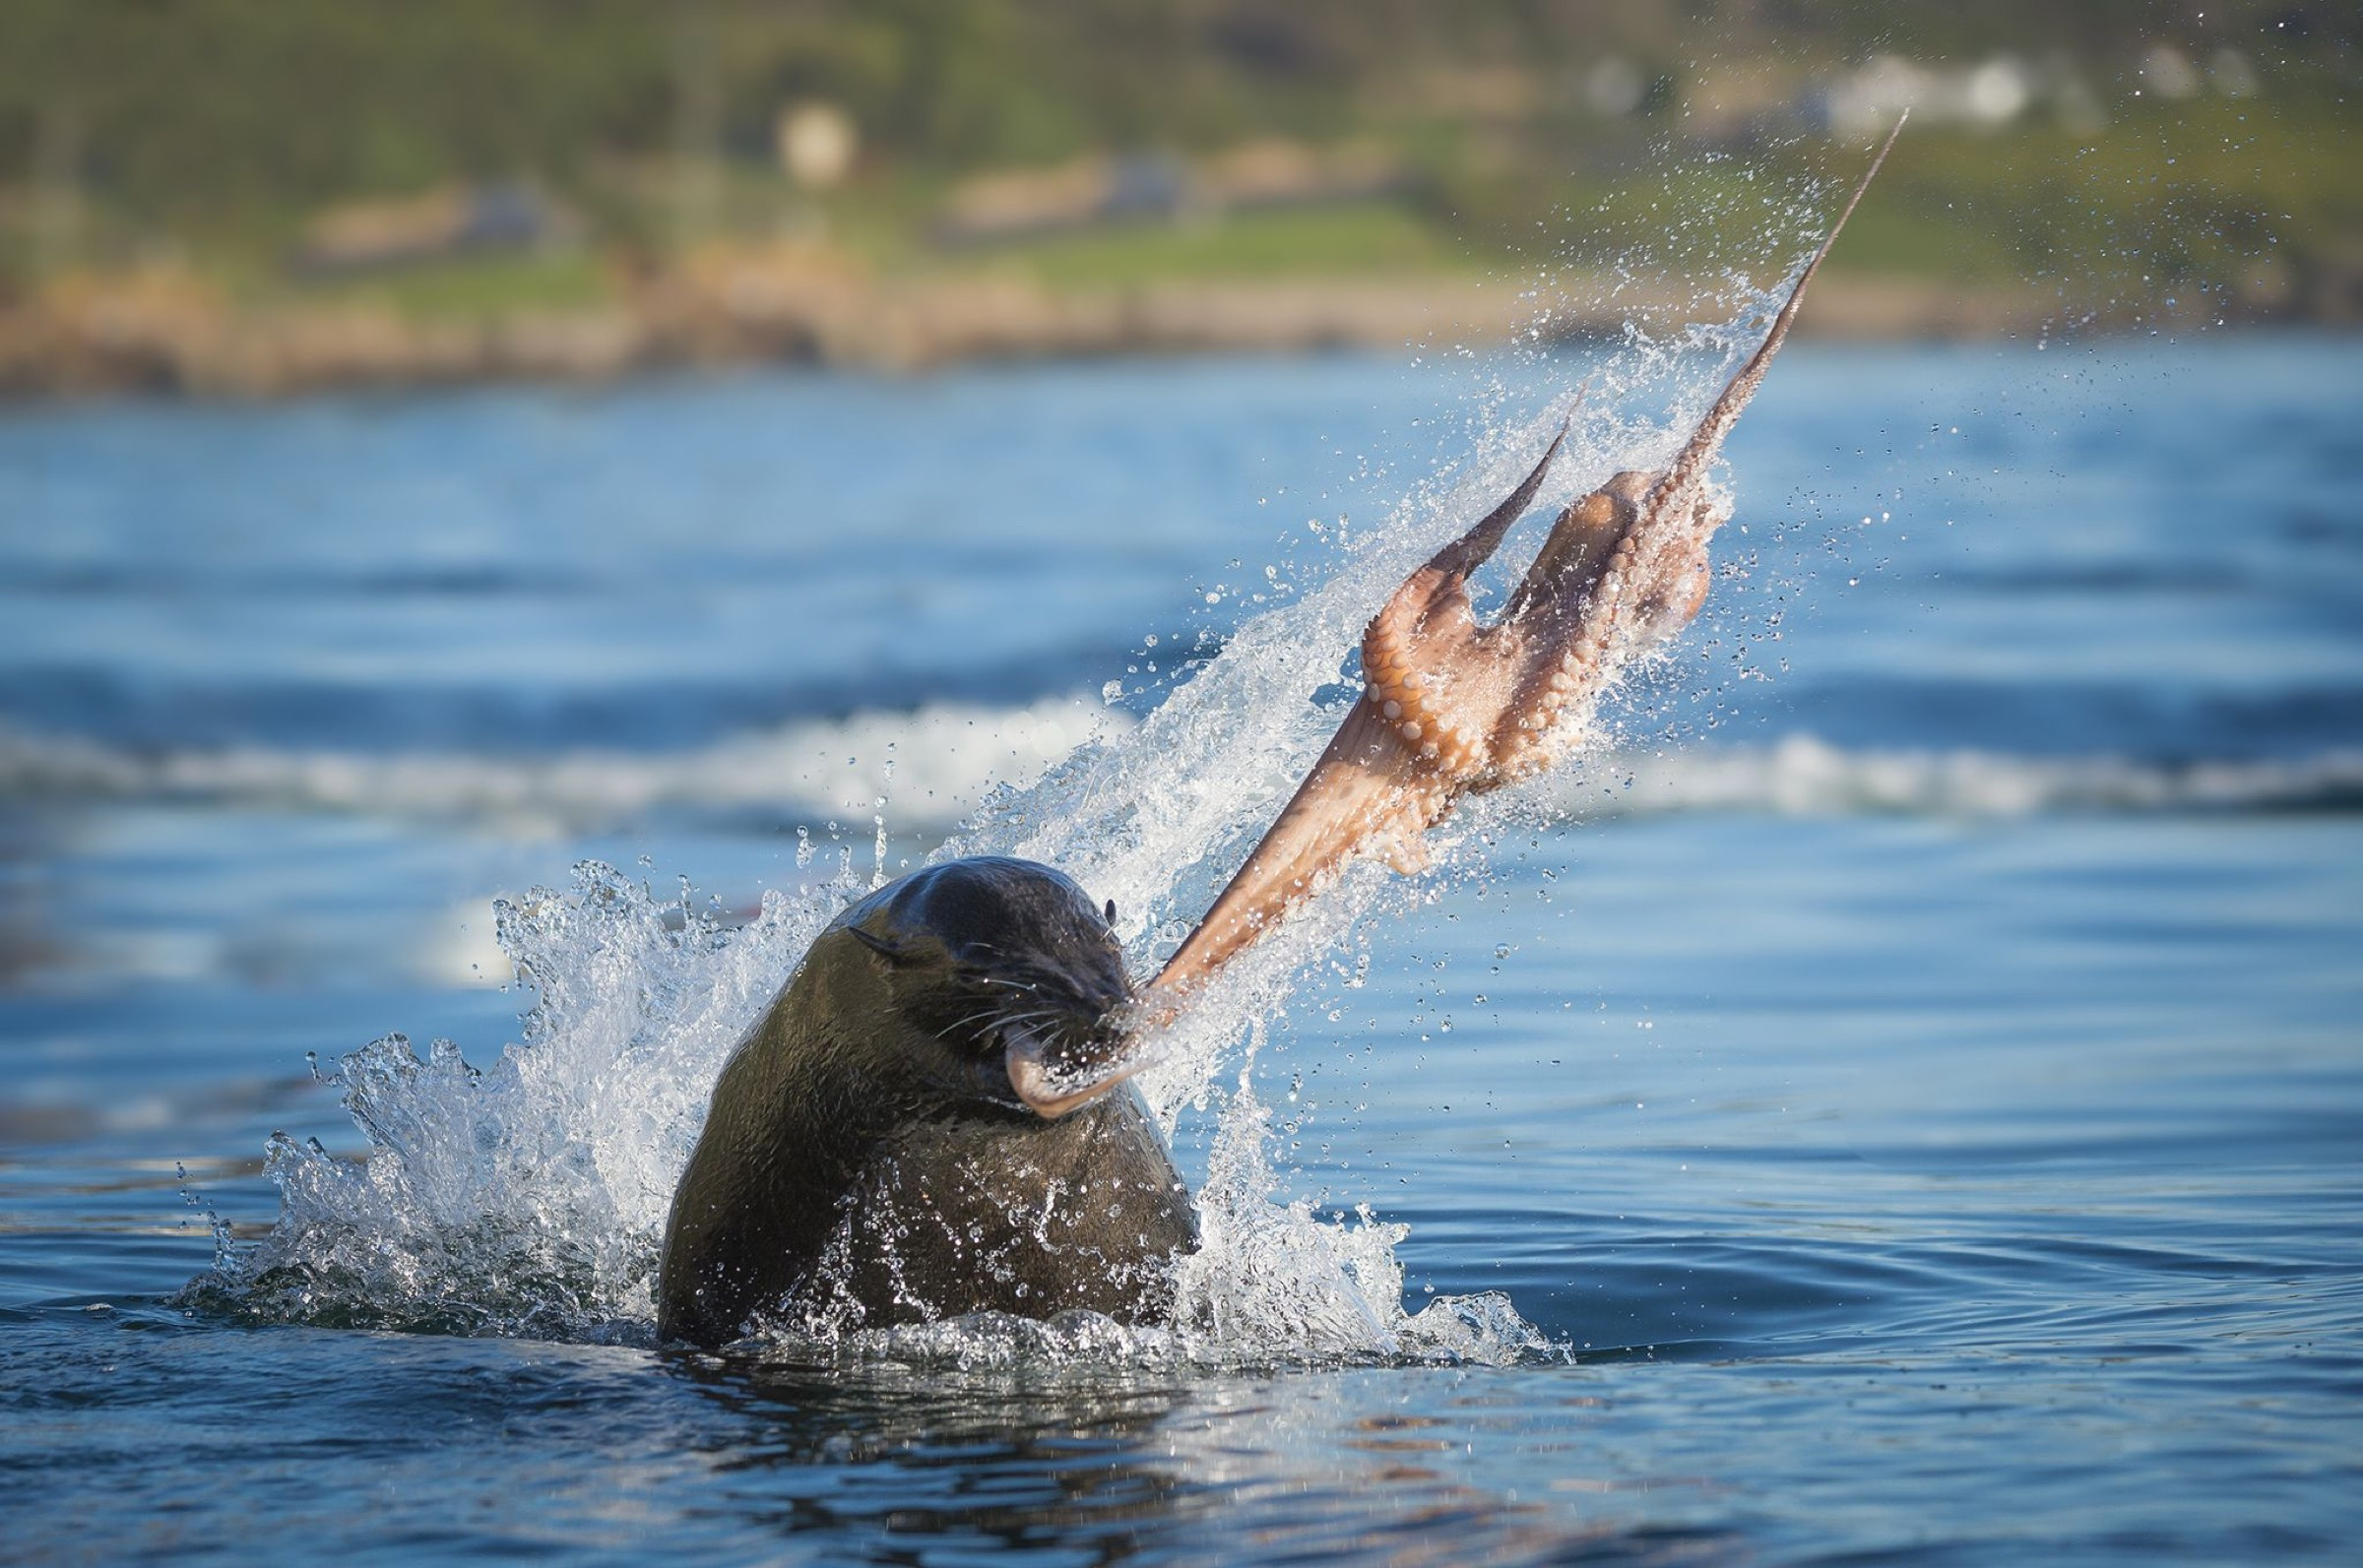 South African fur seal (Arctocephalus pusillus pusillus) bull breaking apart octopus. False Bay, Cape Town, South Africa.